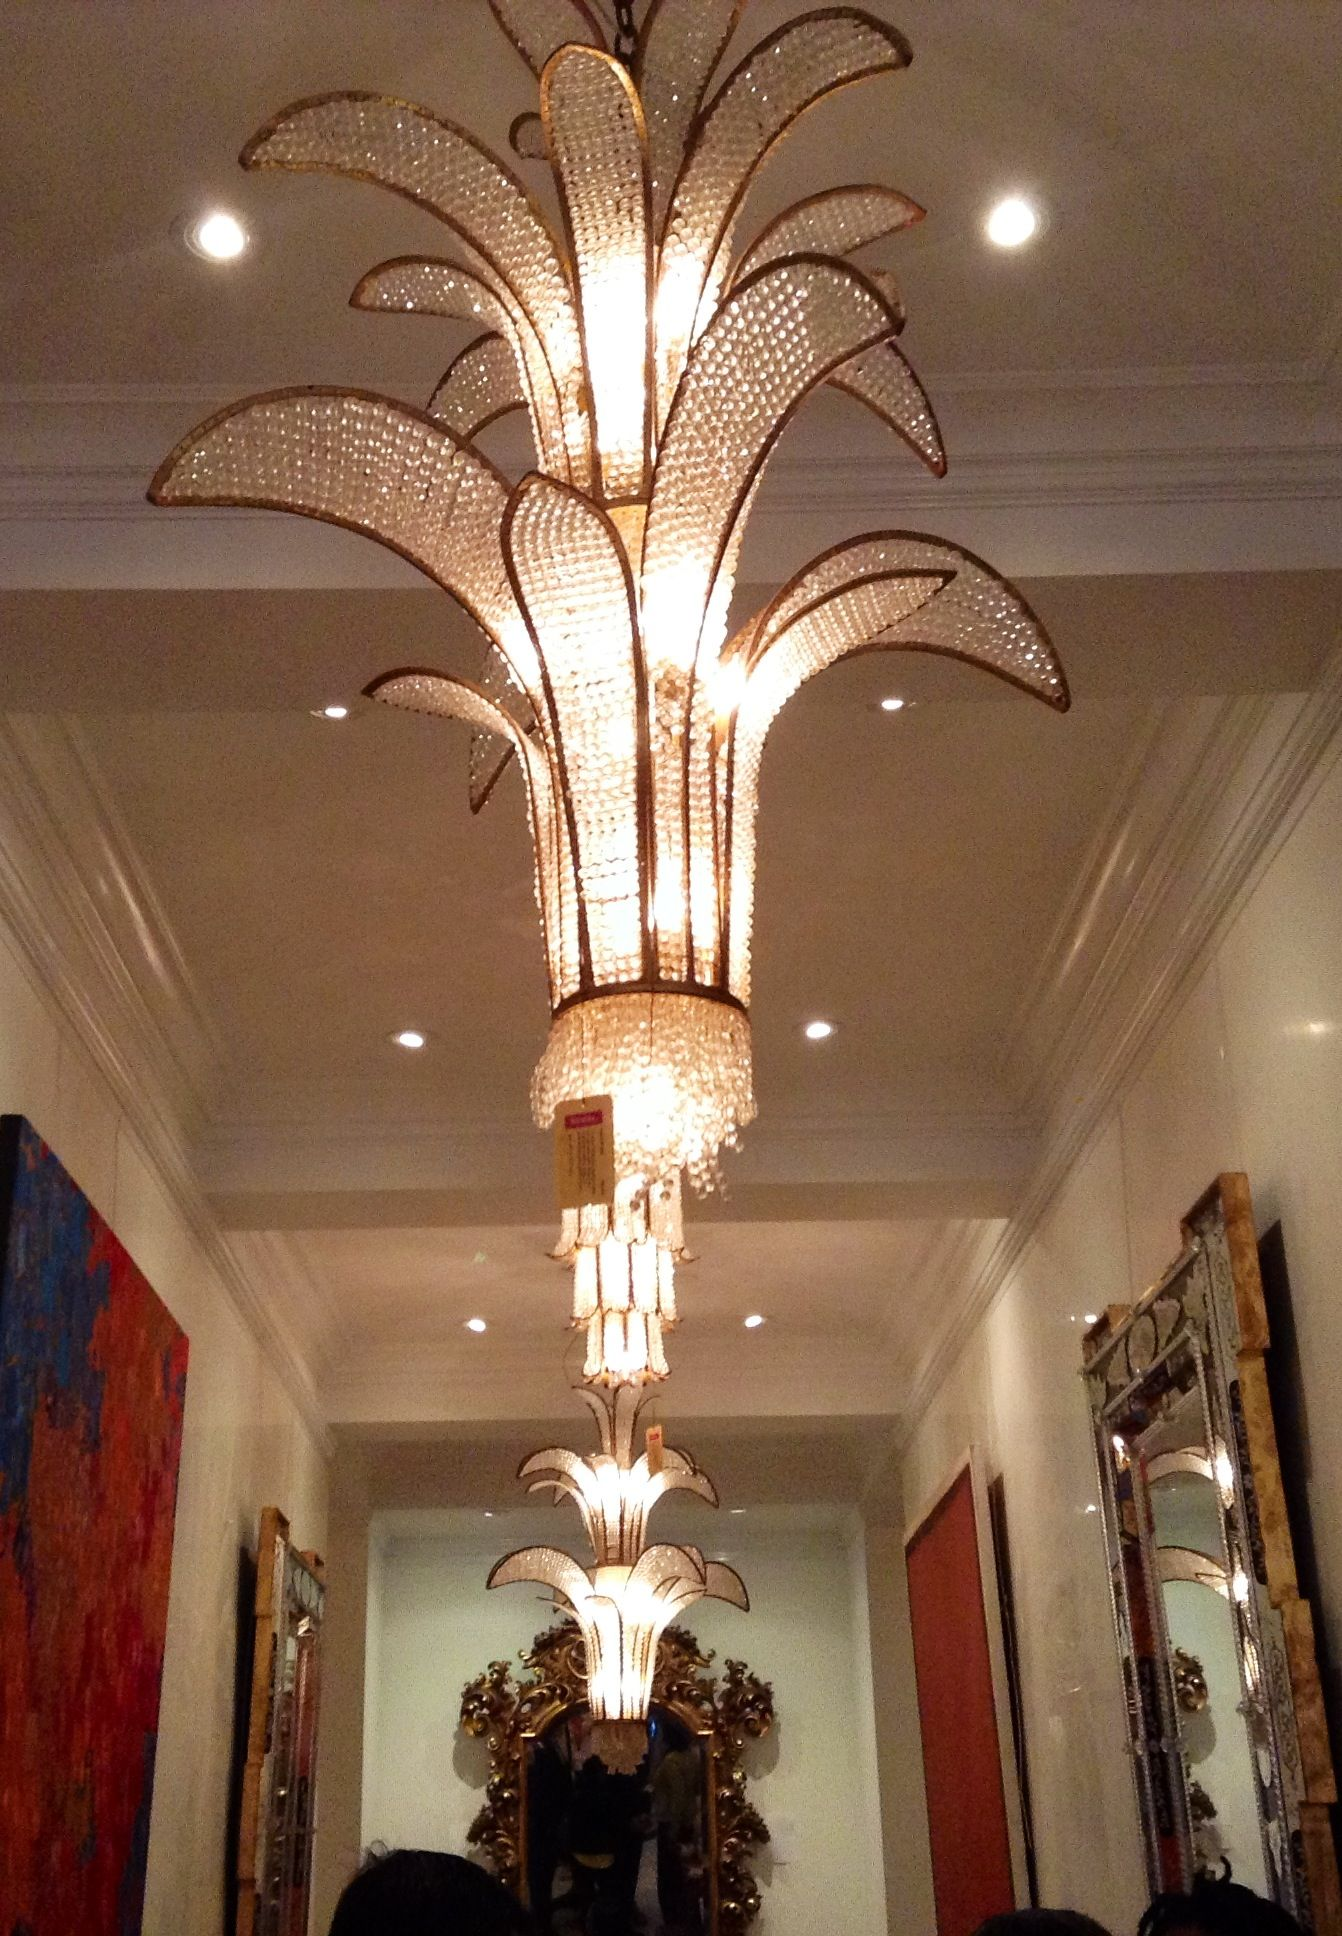 Antique chandeliers at Newell Antiques in NYC - Antique Chandeliers At Newell Antiques In NYC Lights Pinterest